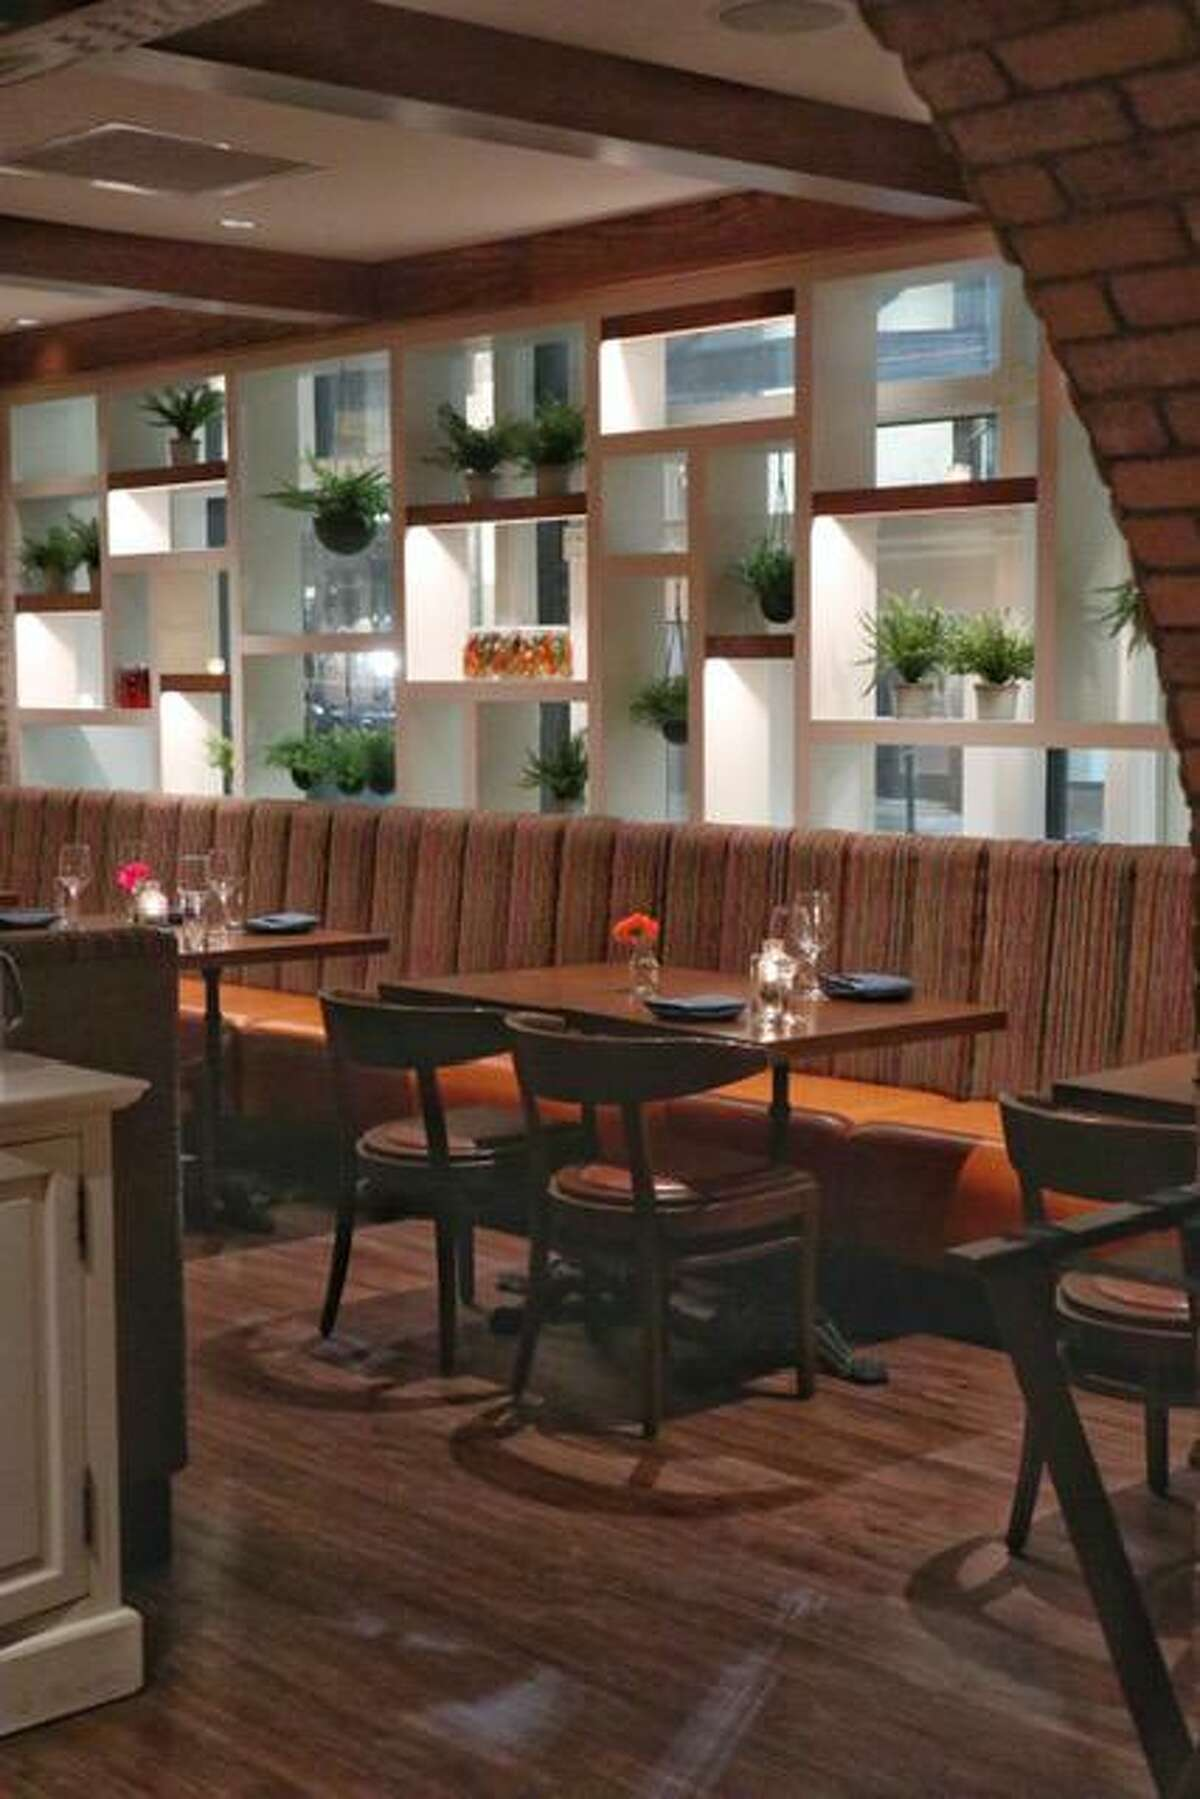 The interior of Terreno in downtown Hartford.